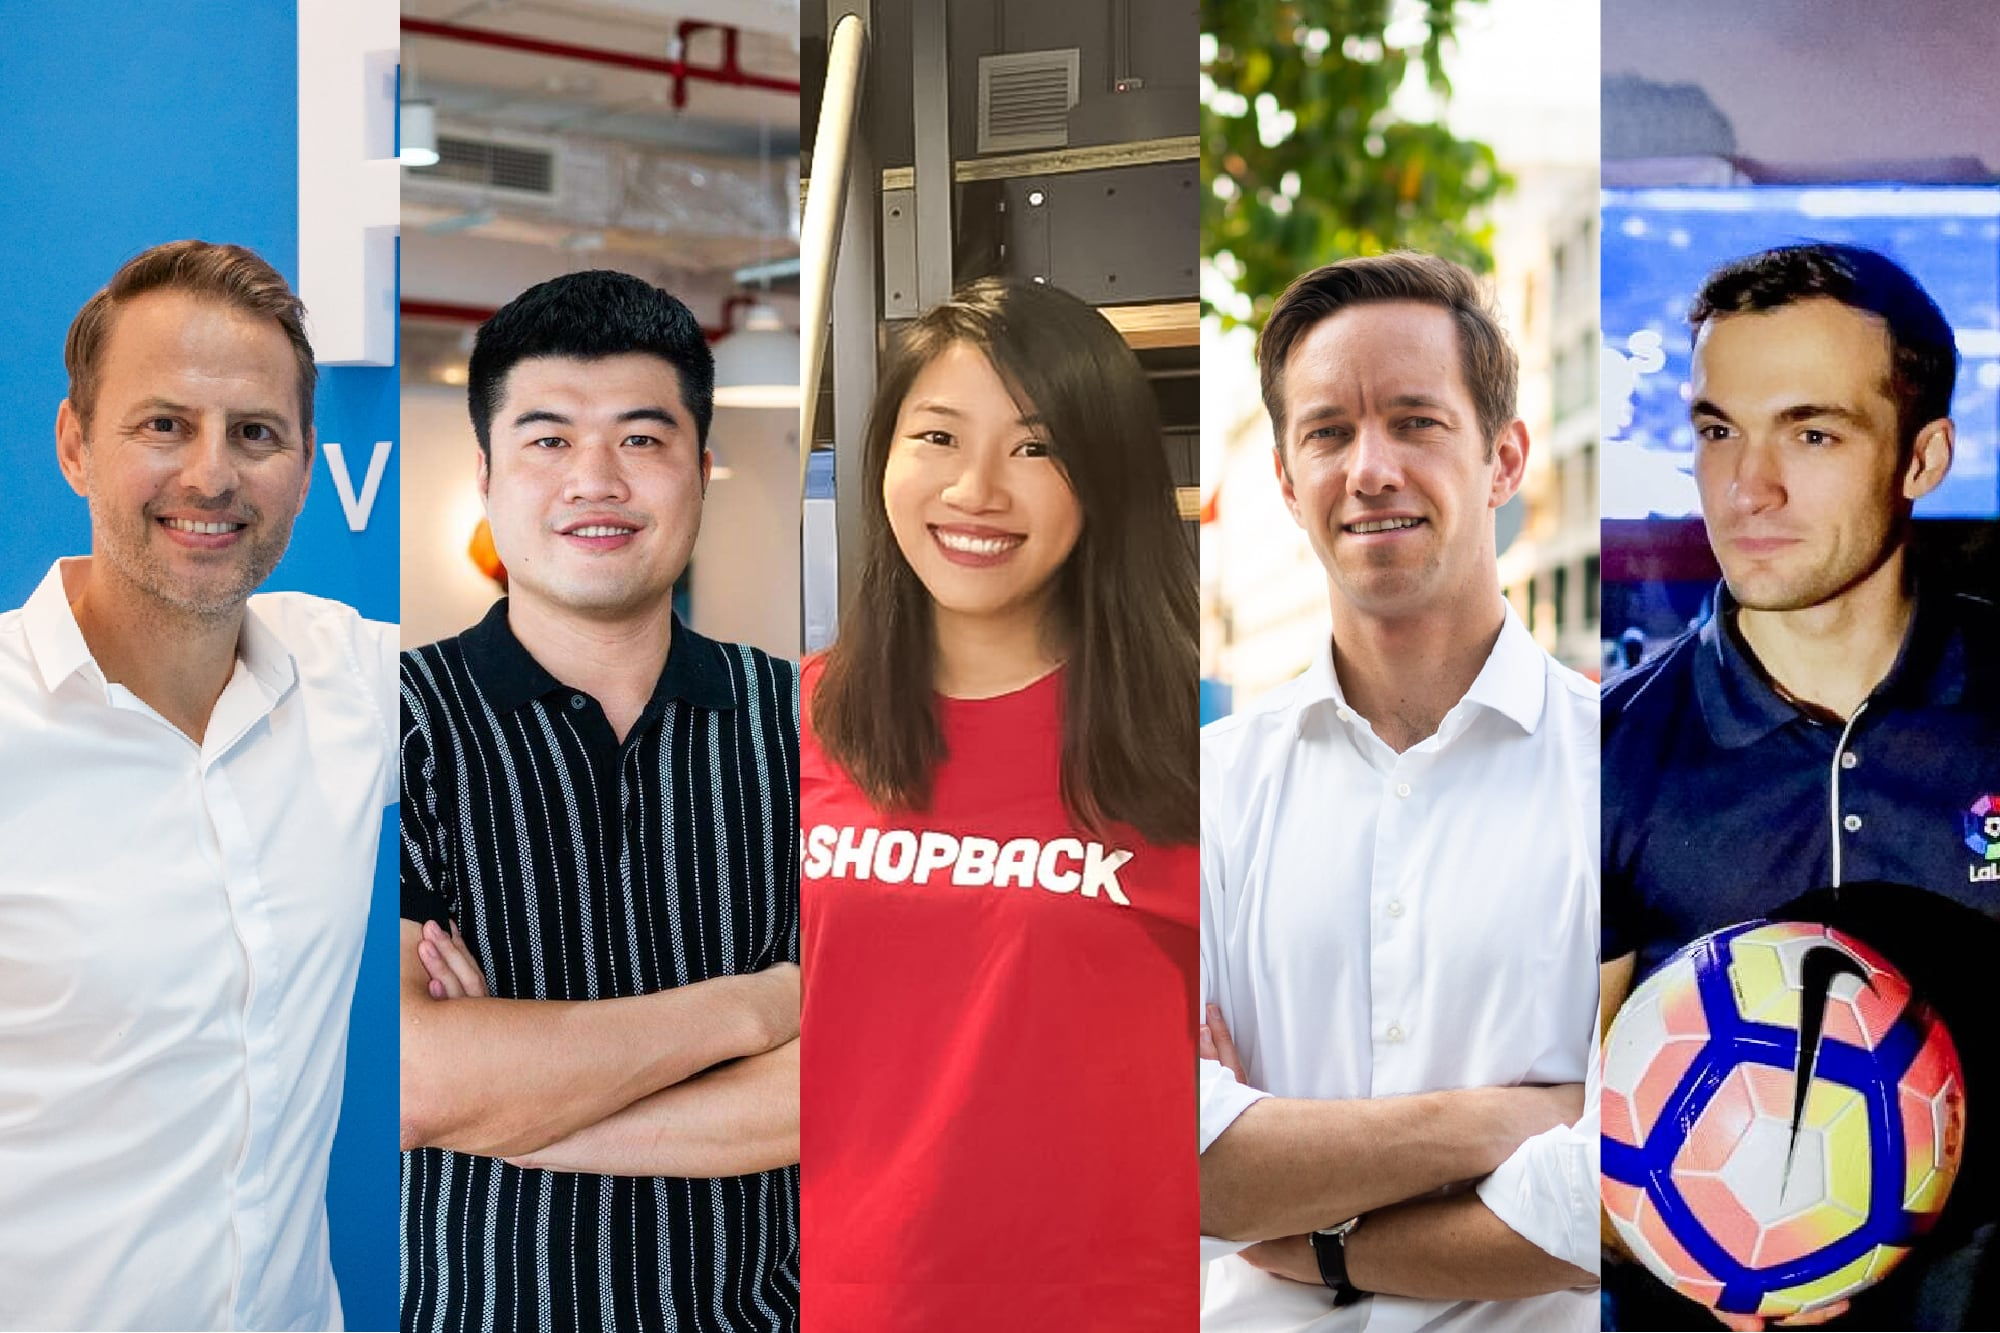 Market Launching In Vietnam The Right Way – Expansion Managers Share Their Top Tips